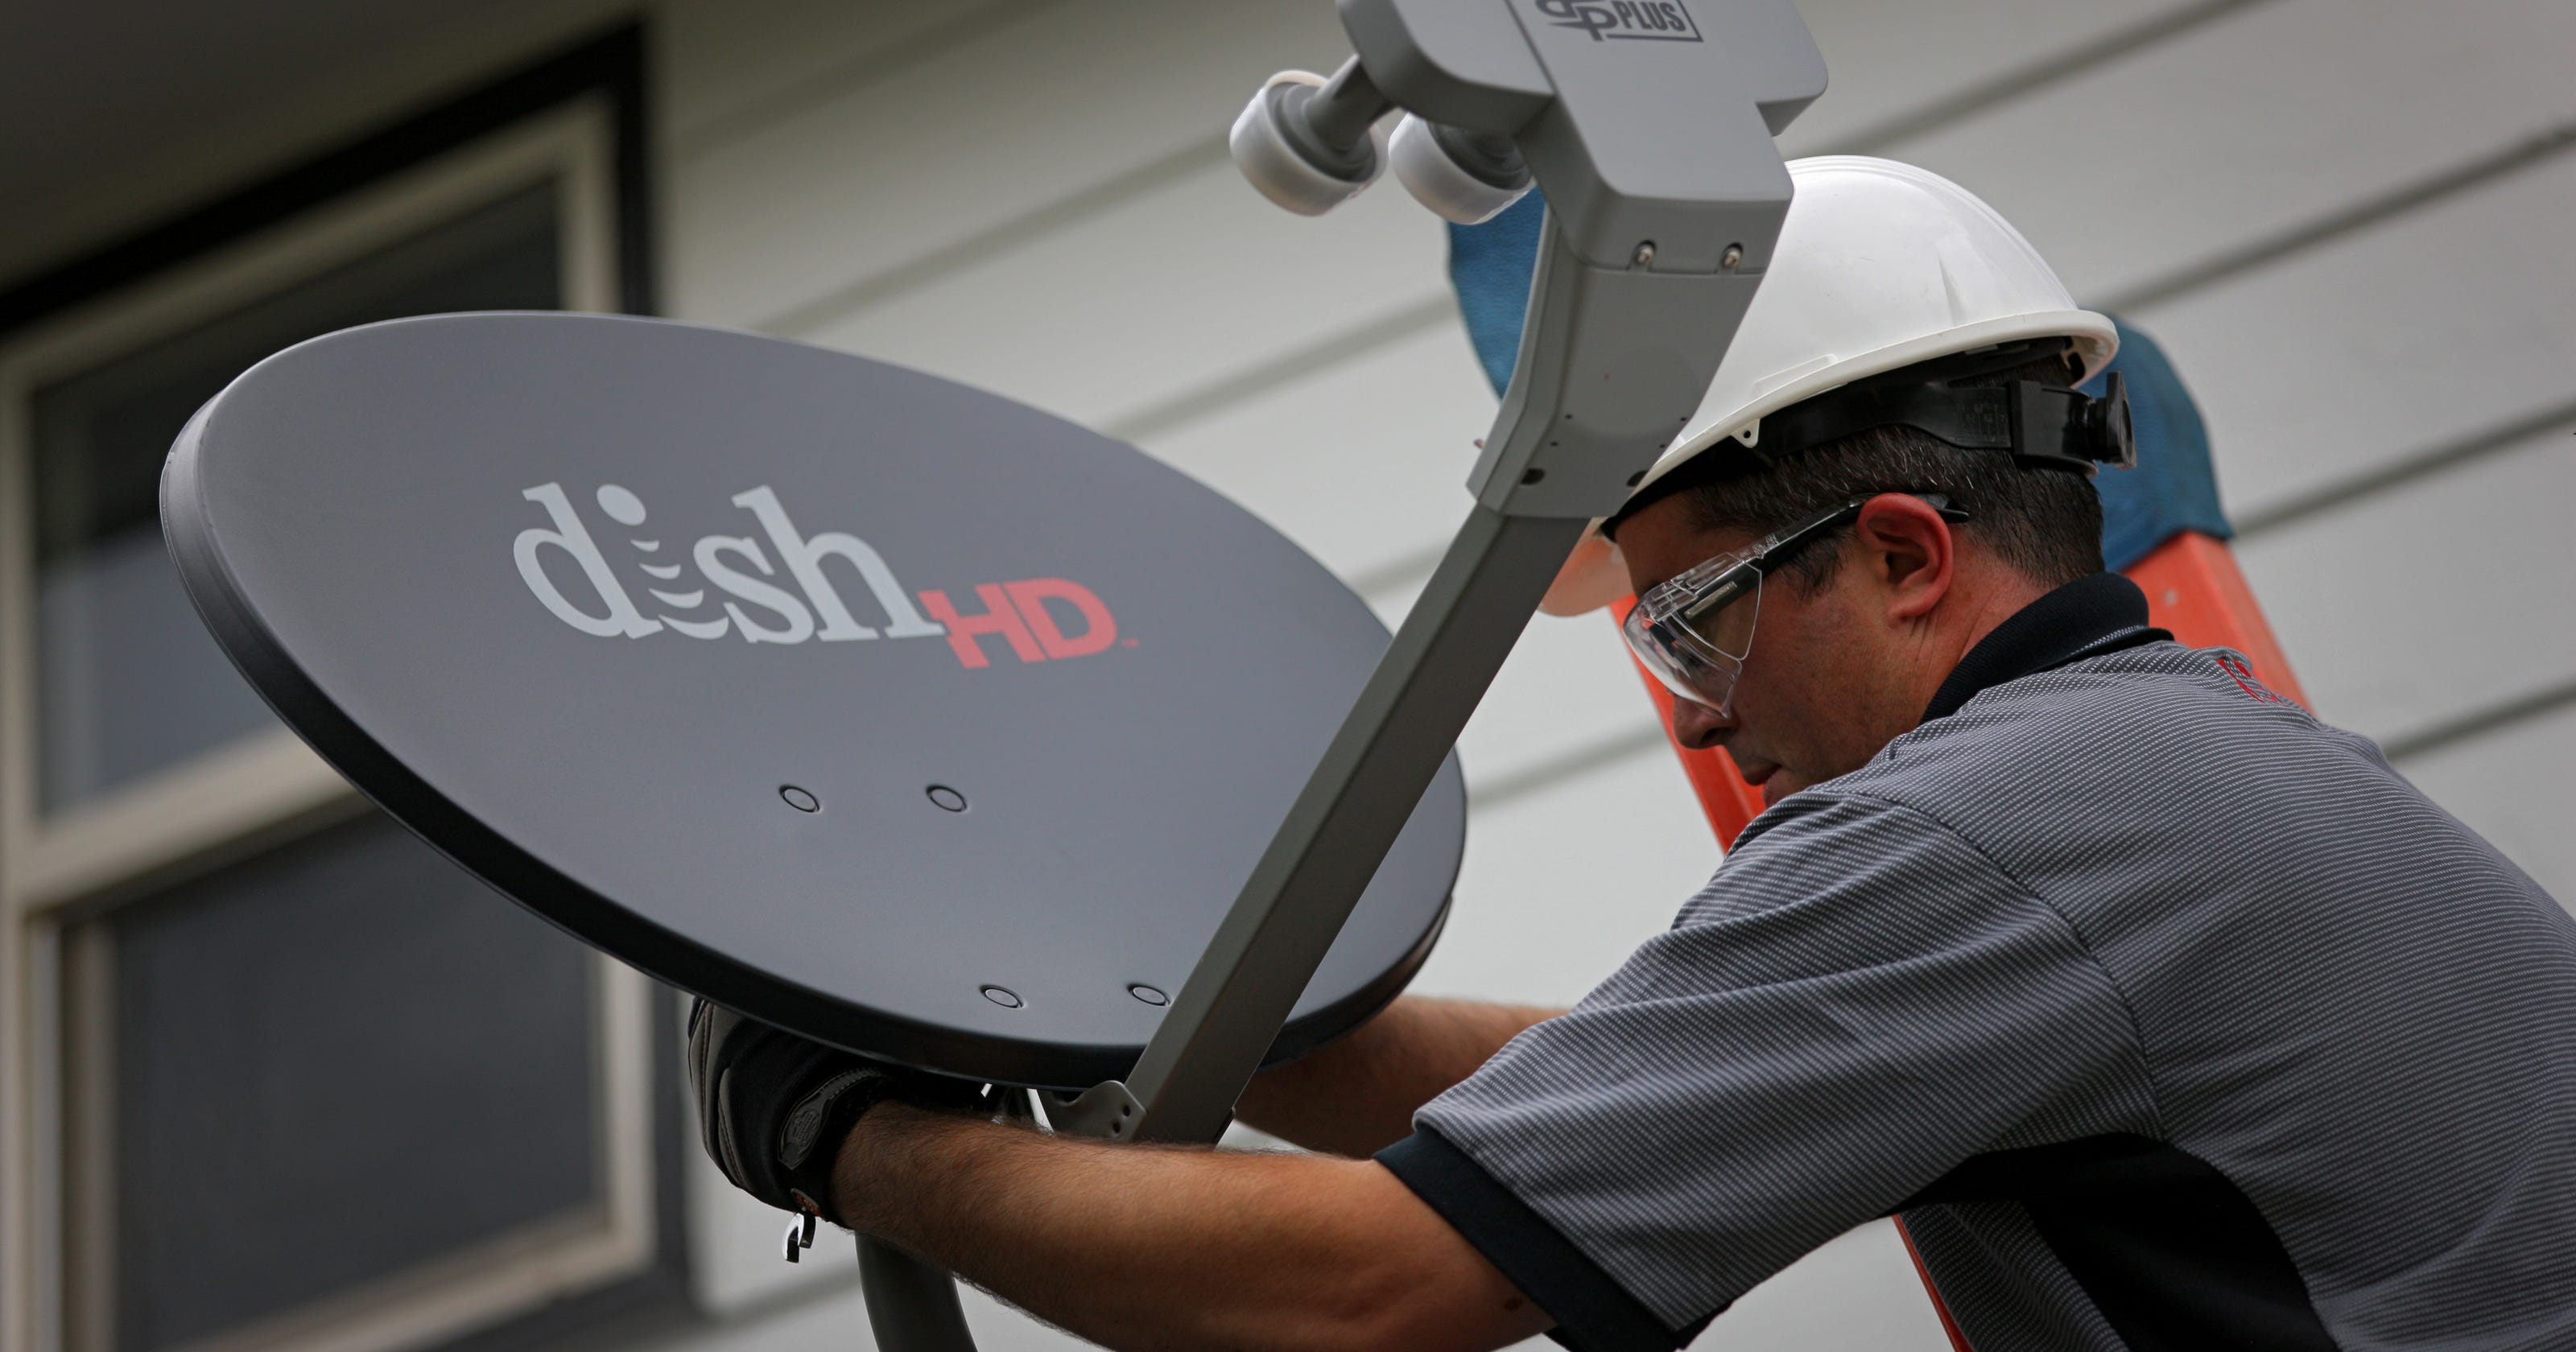 Dish Network and Univision reach agreement after nine month impasse